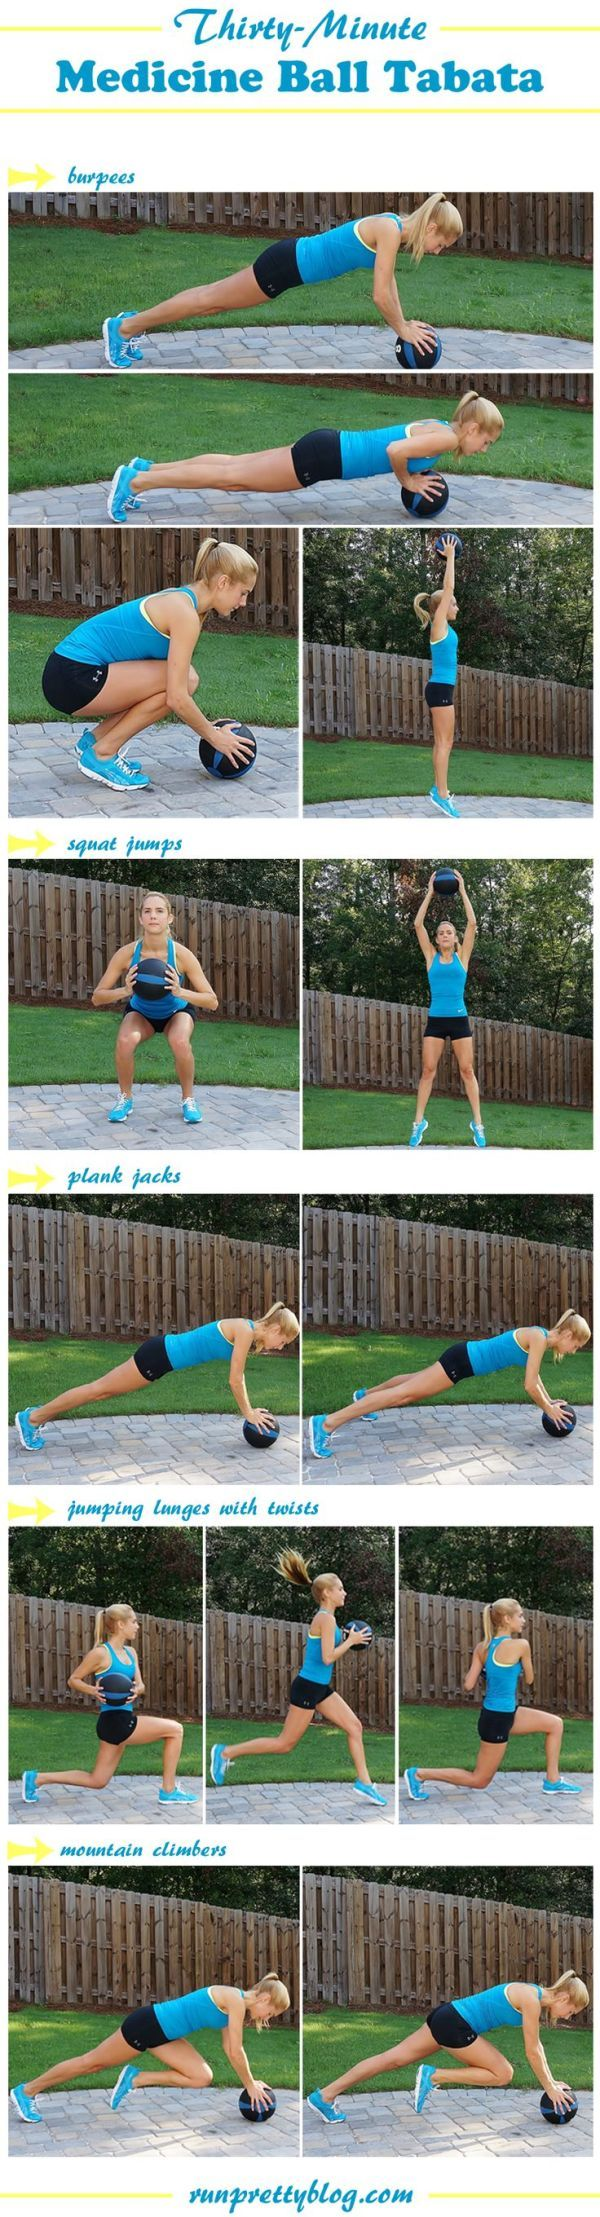 tabata and hiit workouts like this medicine ball workout from Run Pretty Blog.